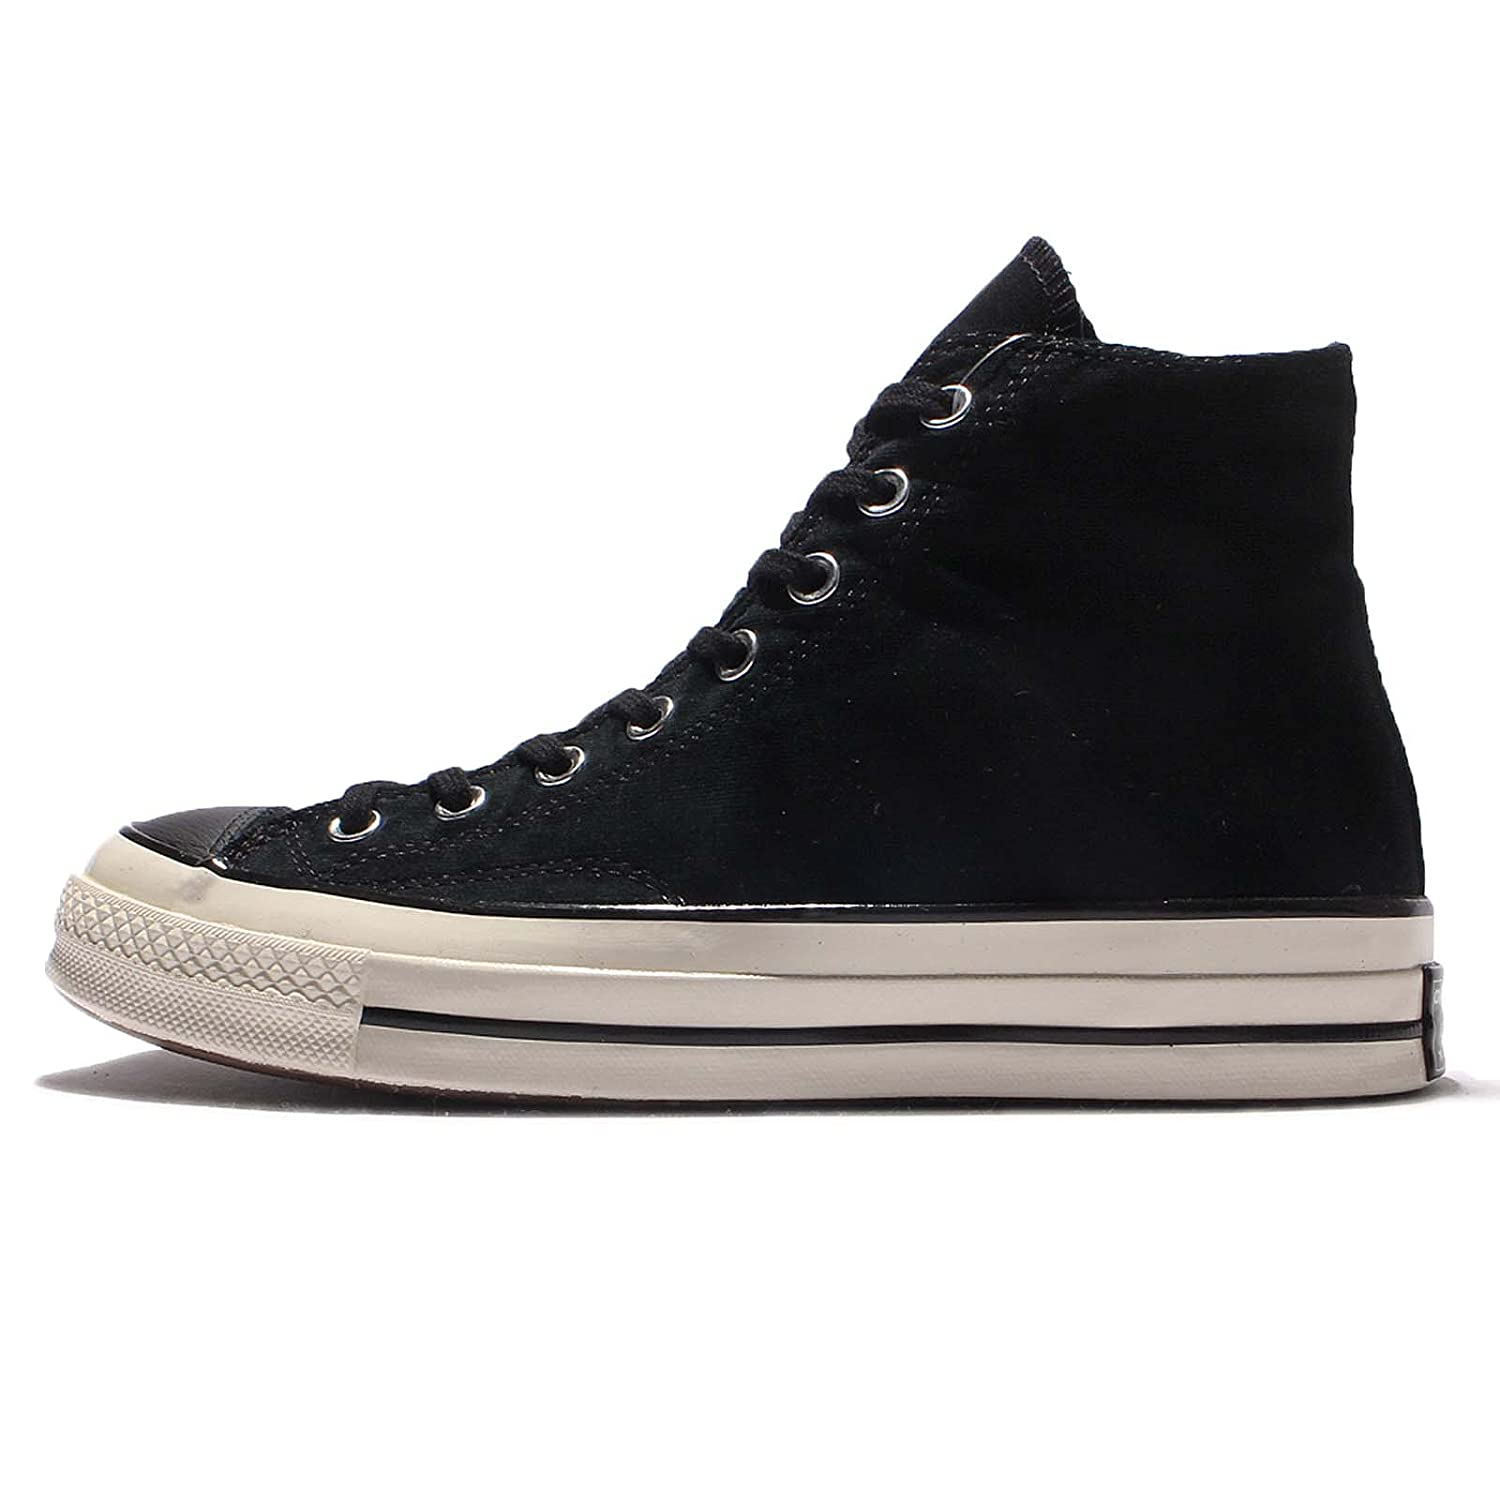 Converse Men's Chuck Taylor All Star 70 High Top Sneakers B01MCRSXC3 8 D(M) US|BLACK/GREY WHITE